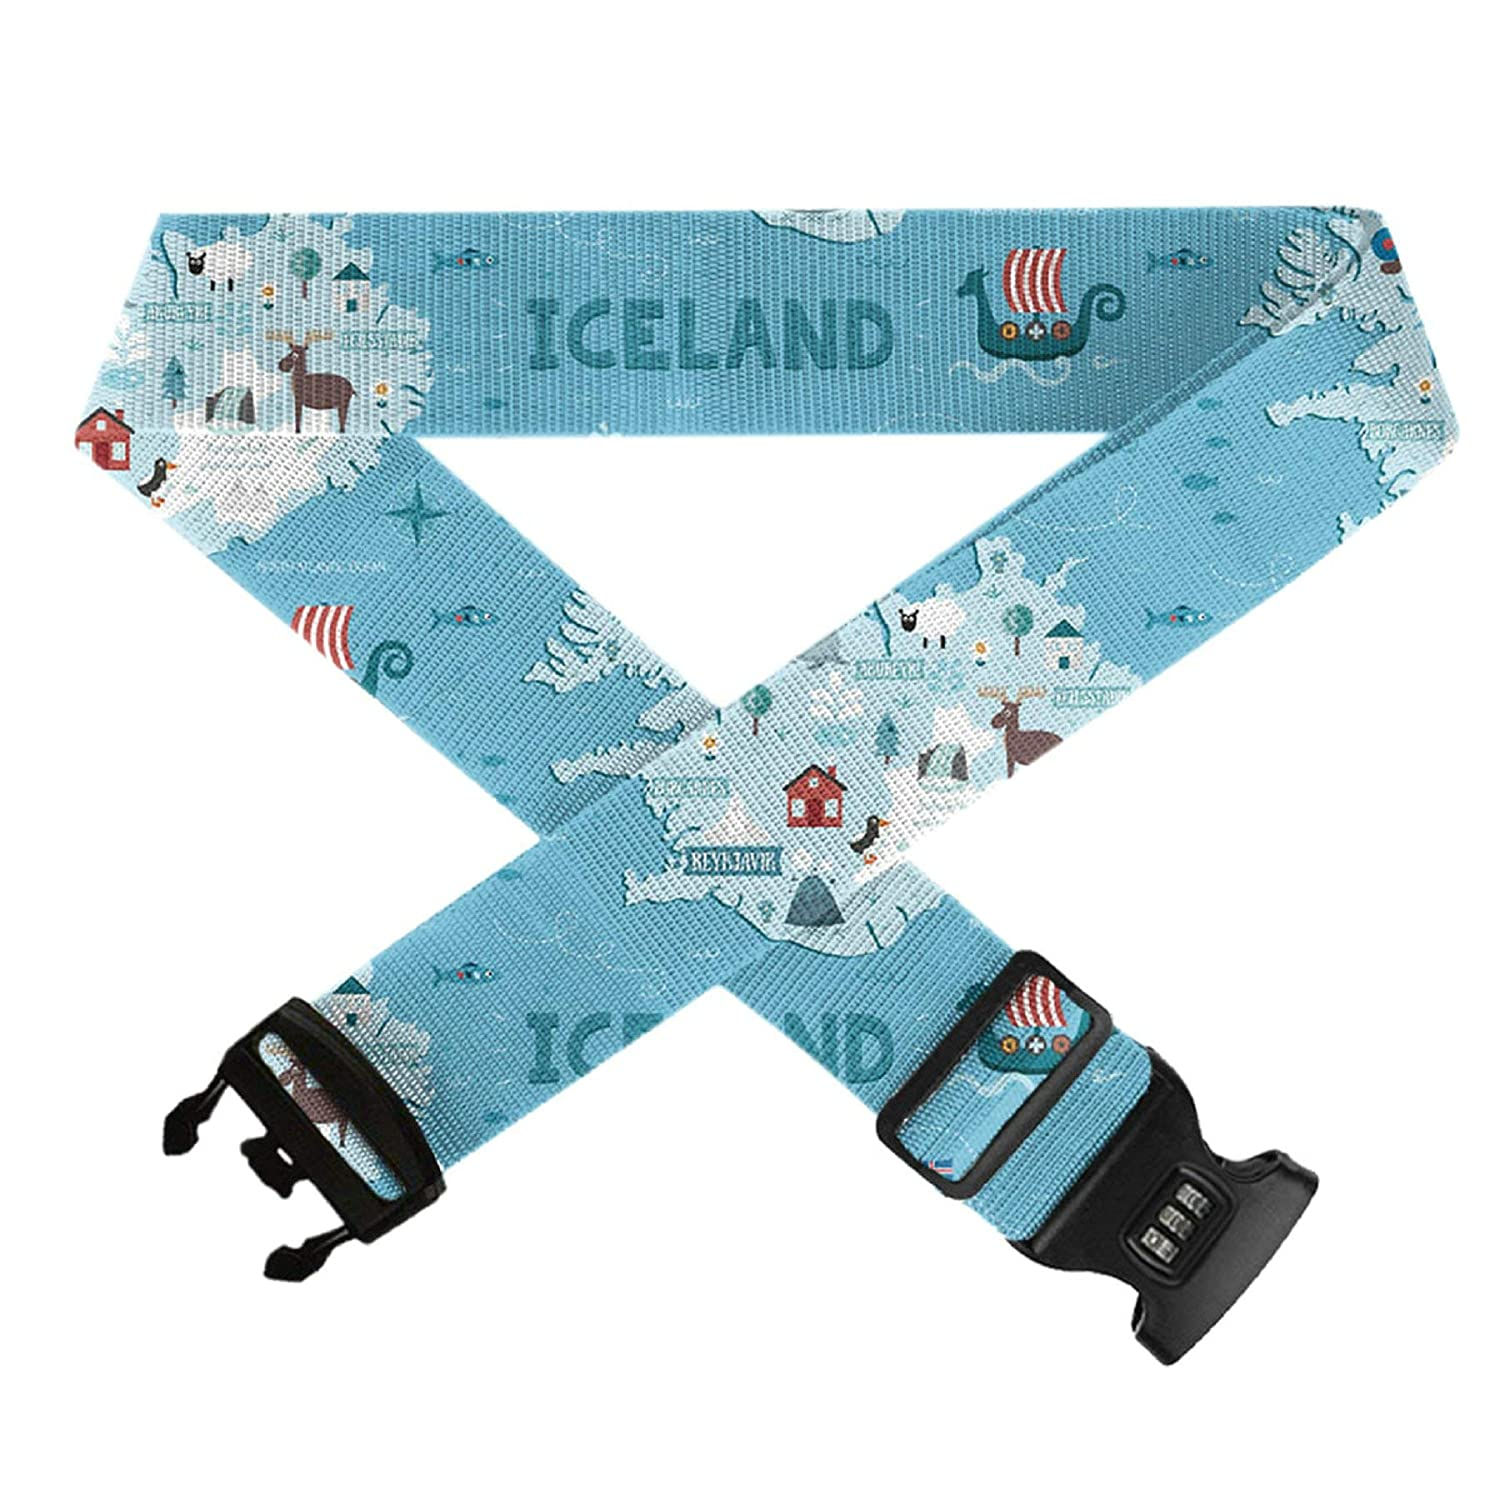 Adjustable Add-A-Bag Luggage Strap,1 PC Baggage Suitcase Straps Belts TSA Approved Lock GLORY ART Iceland Map Travel Accessories